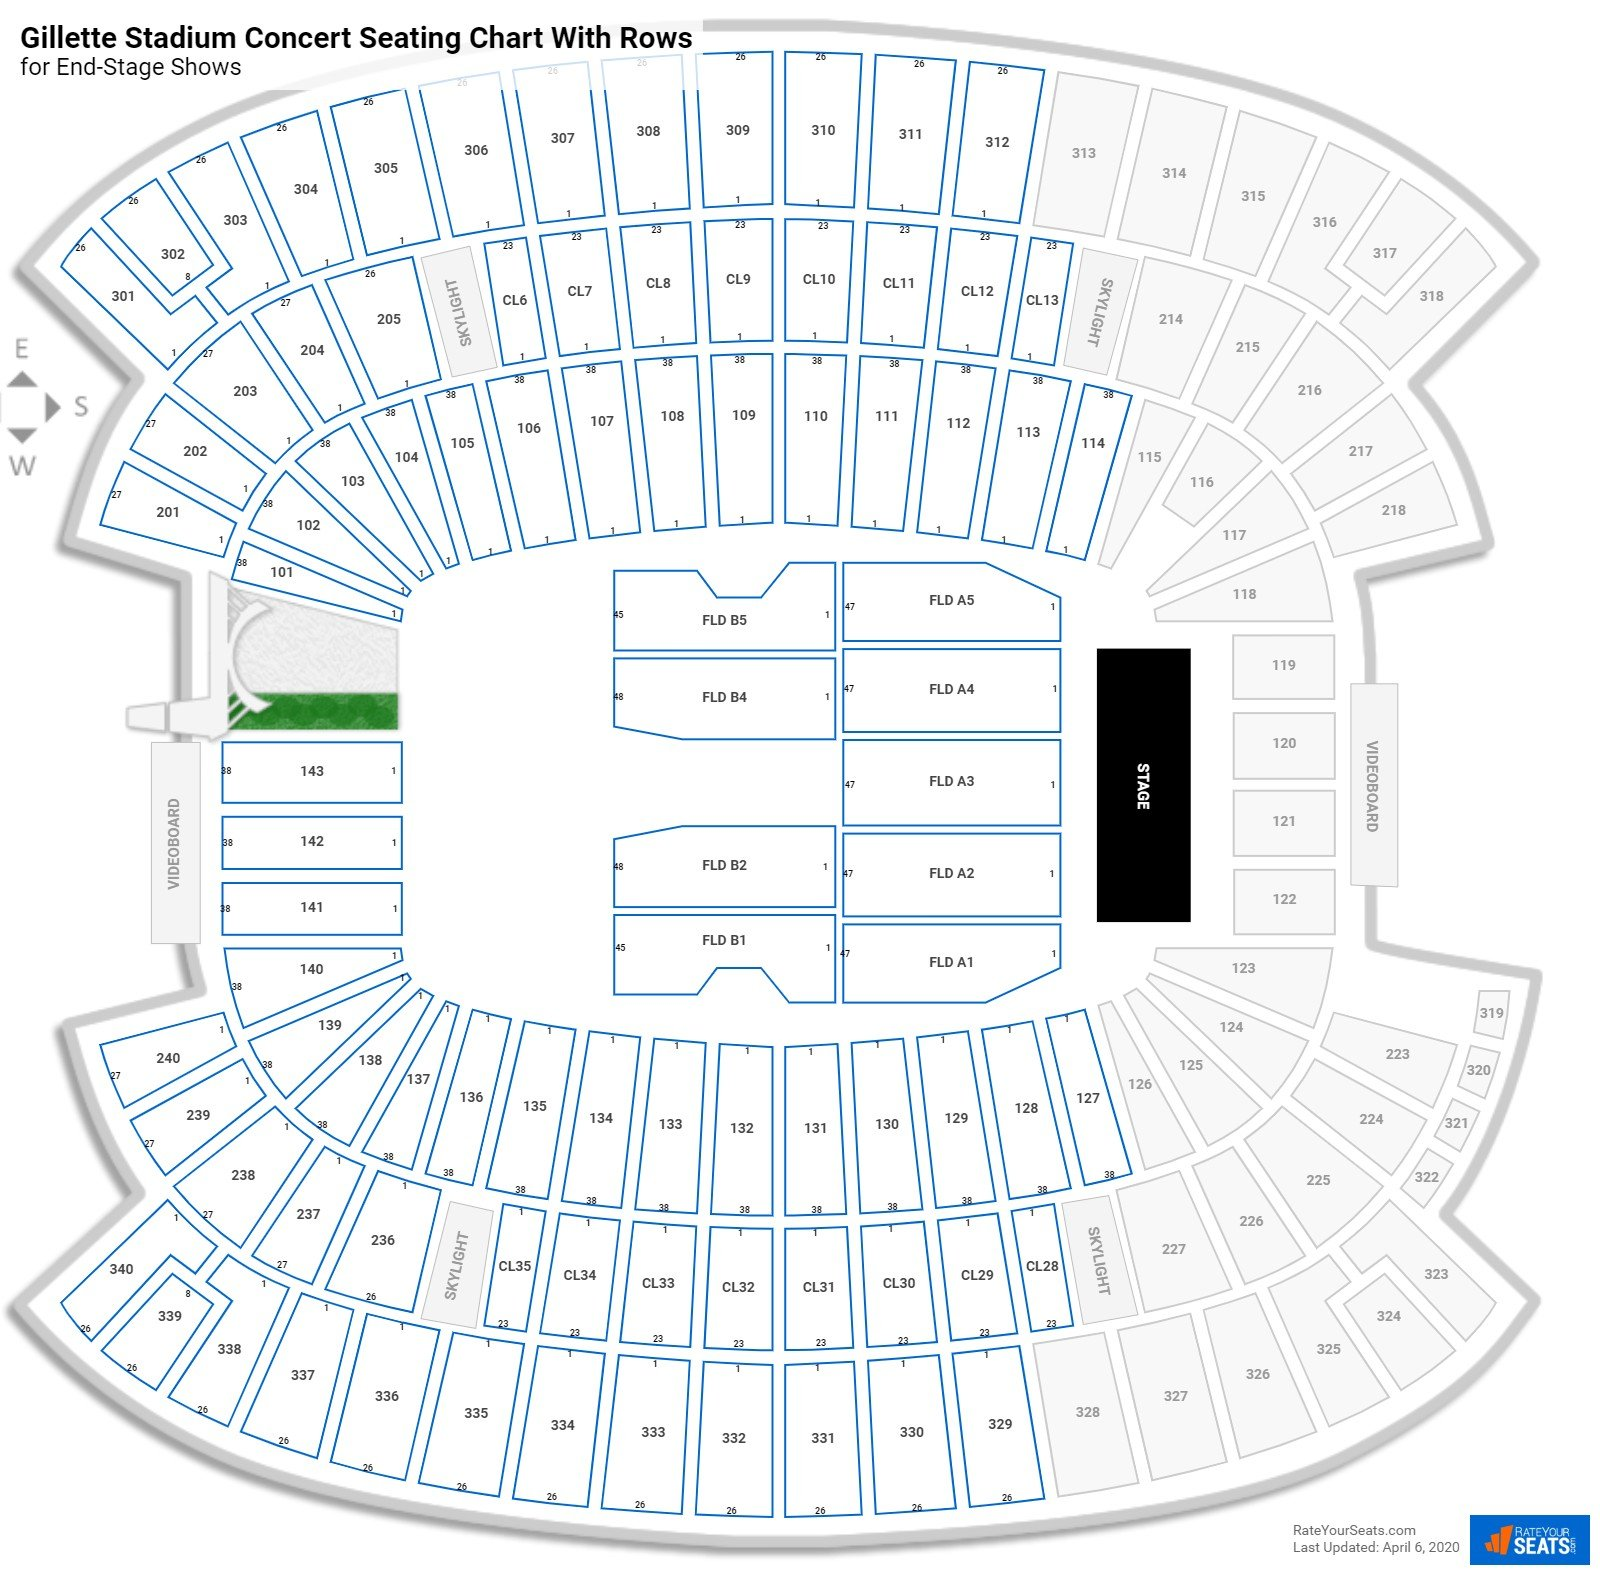 Gillette Stadium seating chart with rows concert